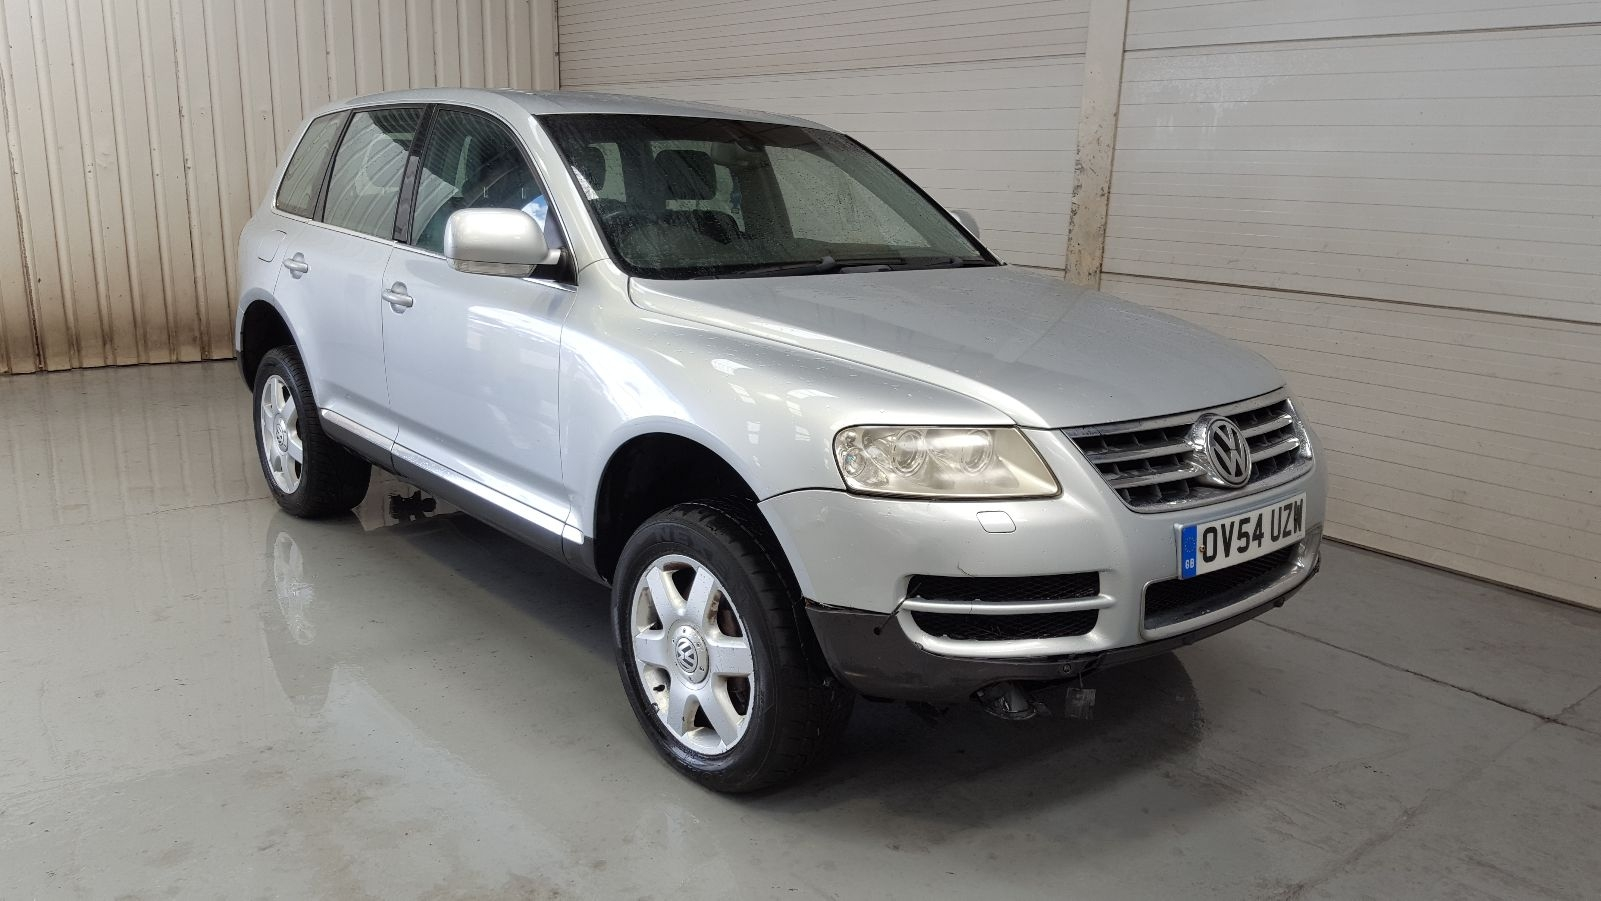 Image for a 2004 Volkswagen Touareg 4.9 Diesel AYH Engine